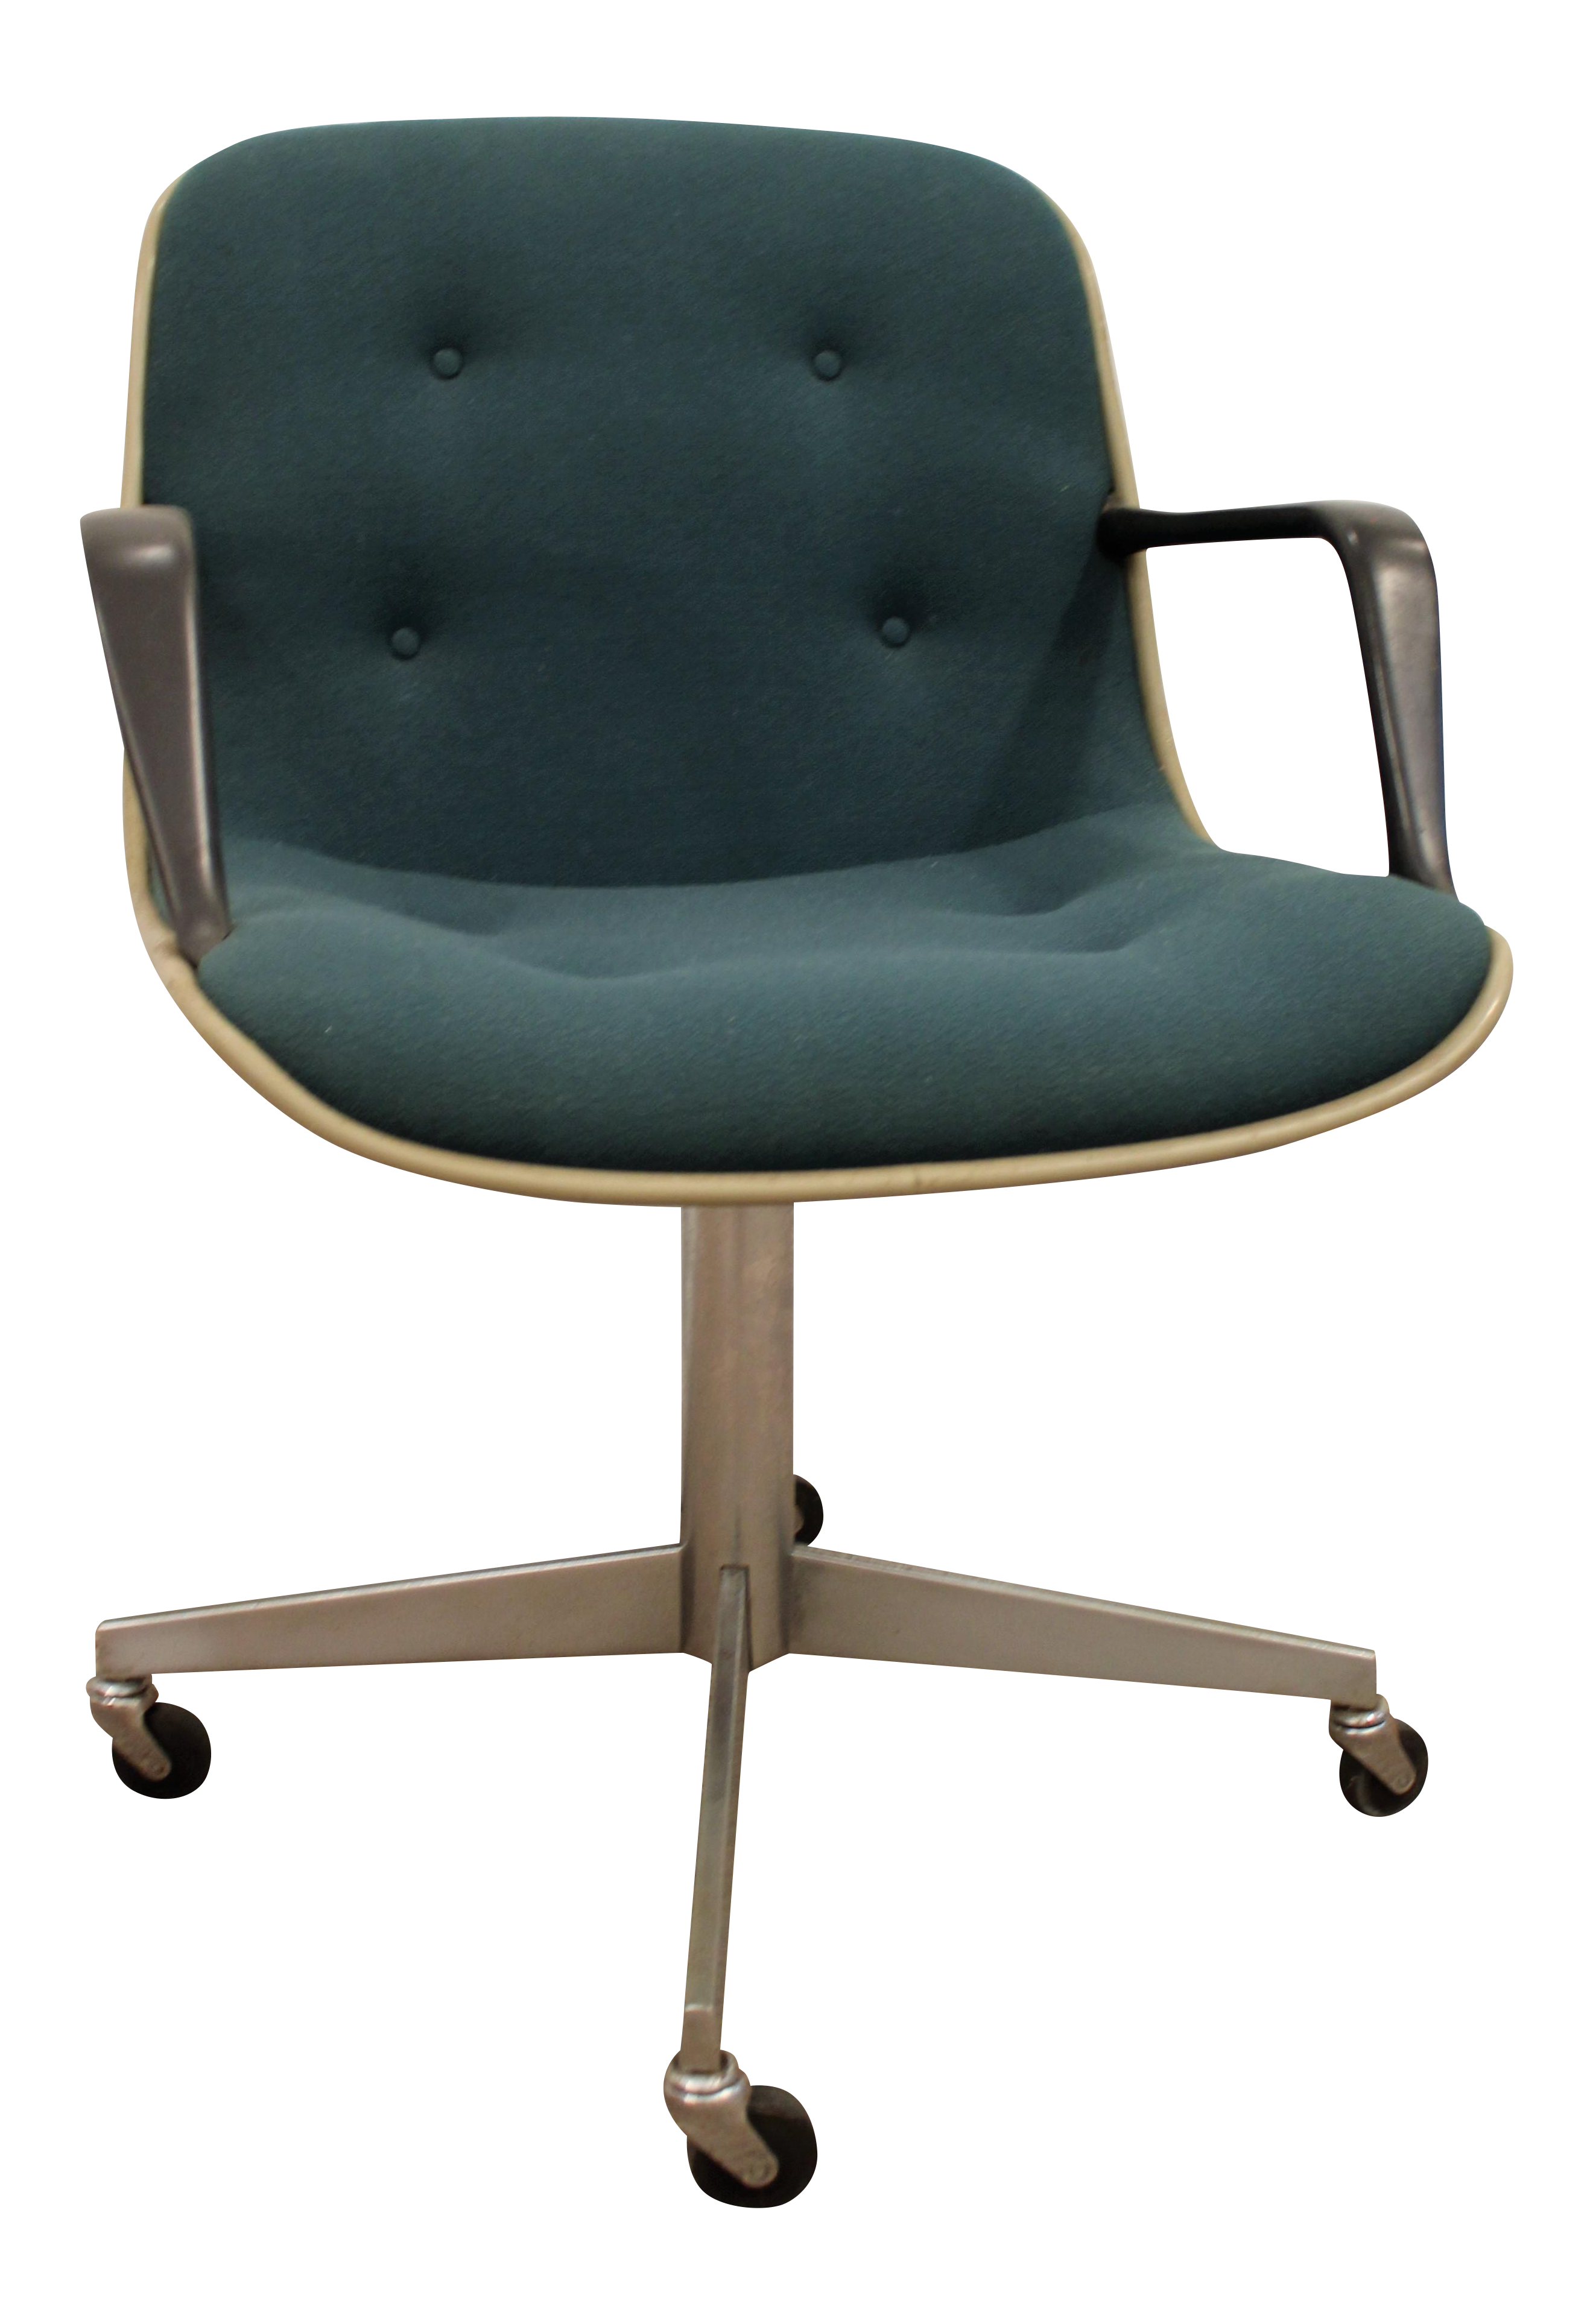 Mid Century Modern Groovy Green Steelcase fice Arm Chair on